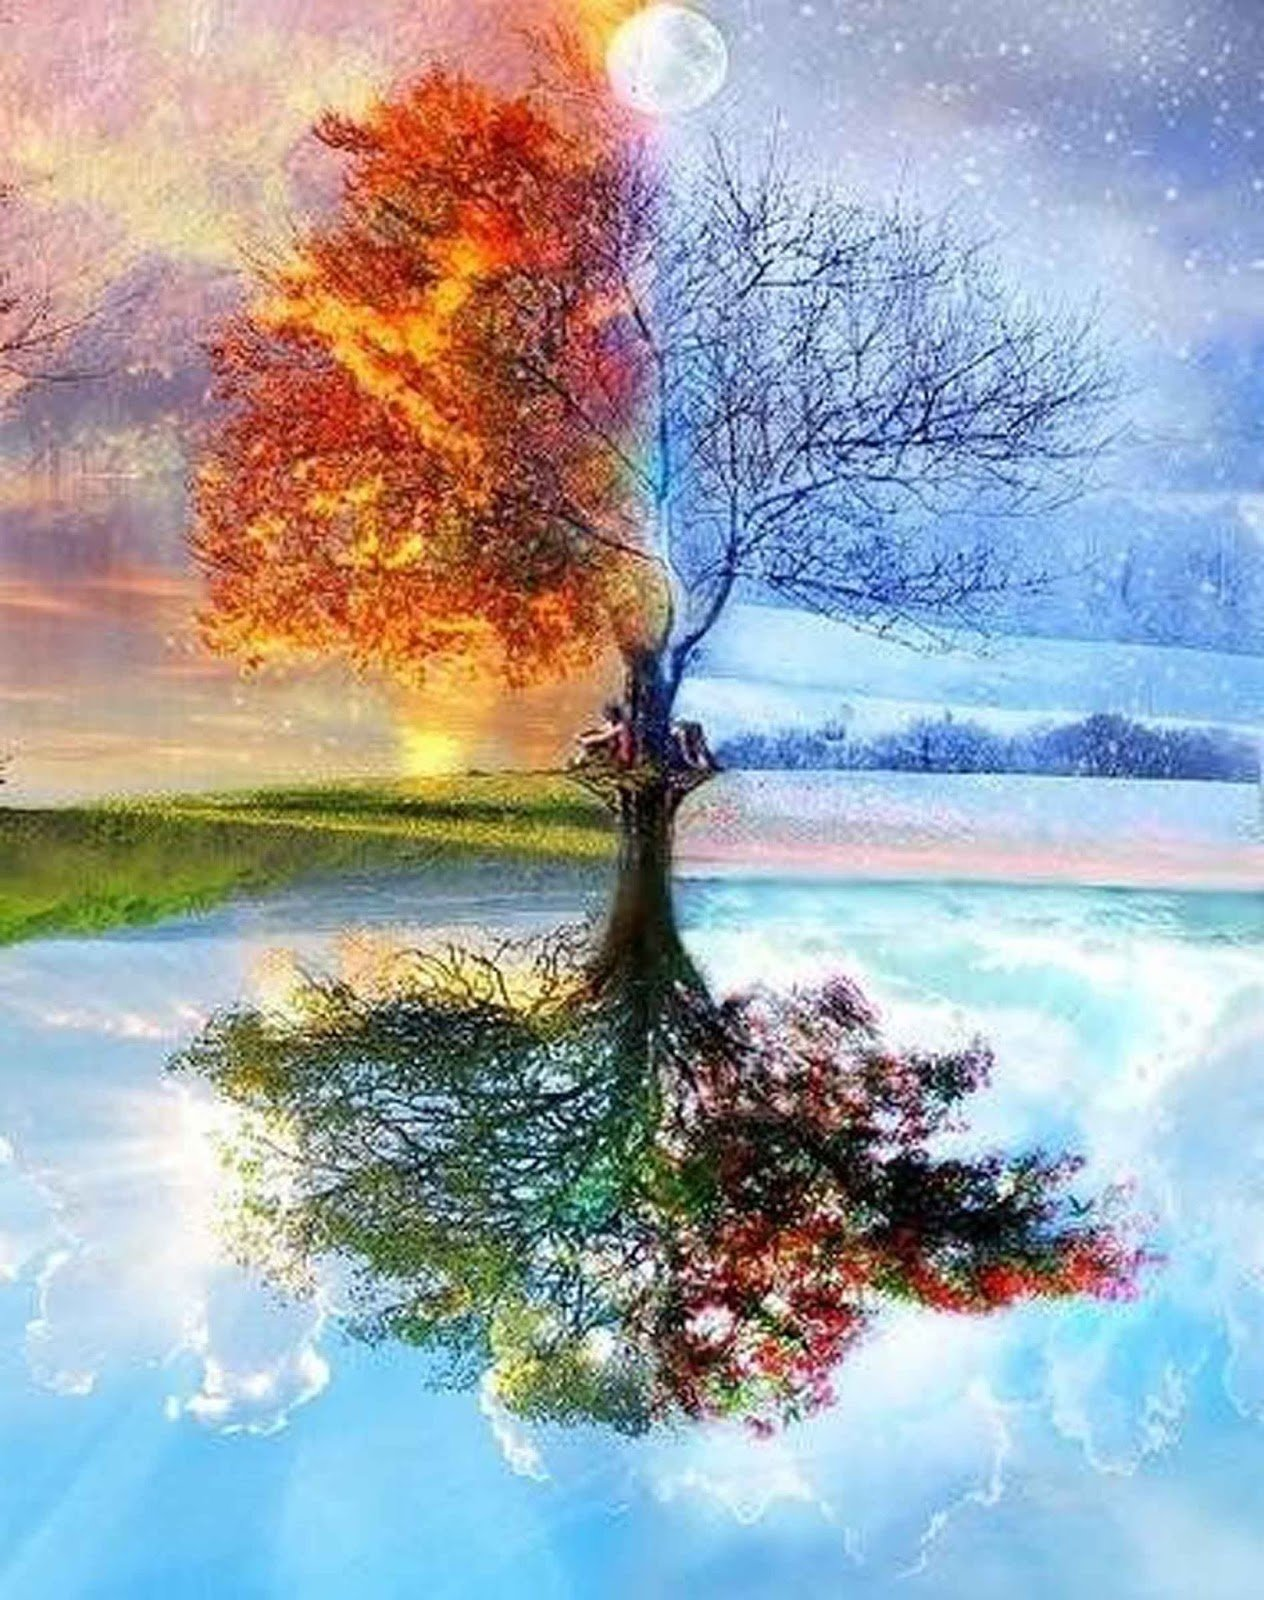 DIY Paint by Numbers for Adults DIY Oil Painting Kit for Kids Beginner - Four Season Tree of Life 16''x20'' by SROOD